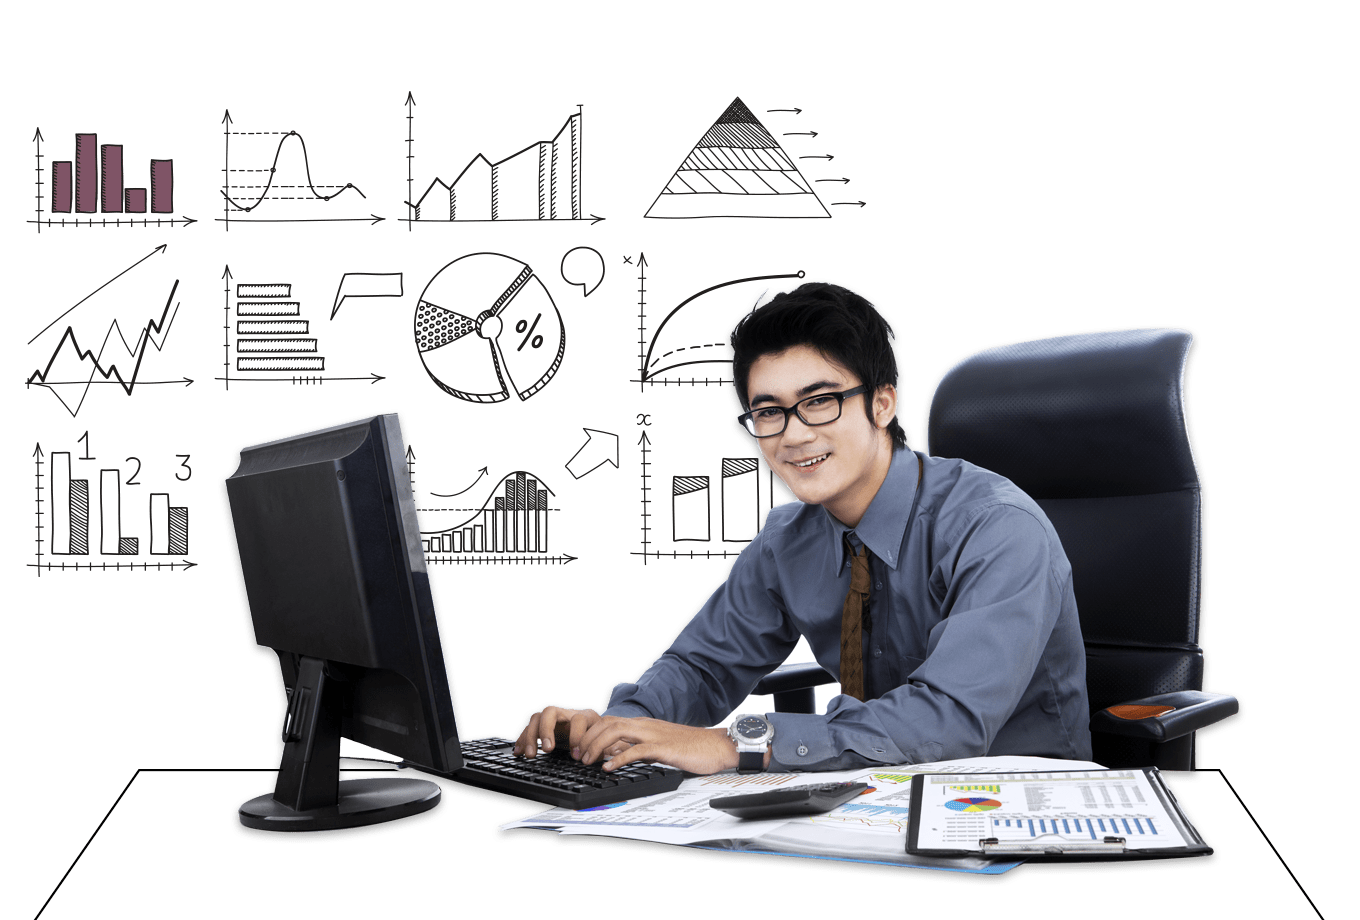 insurance for accountants illustration of office worker surrounded by graphs and paperwork